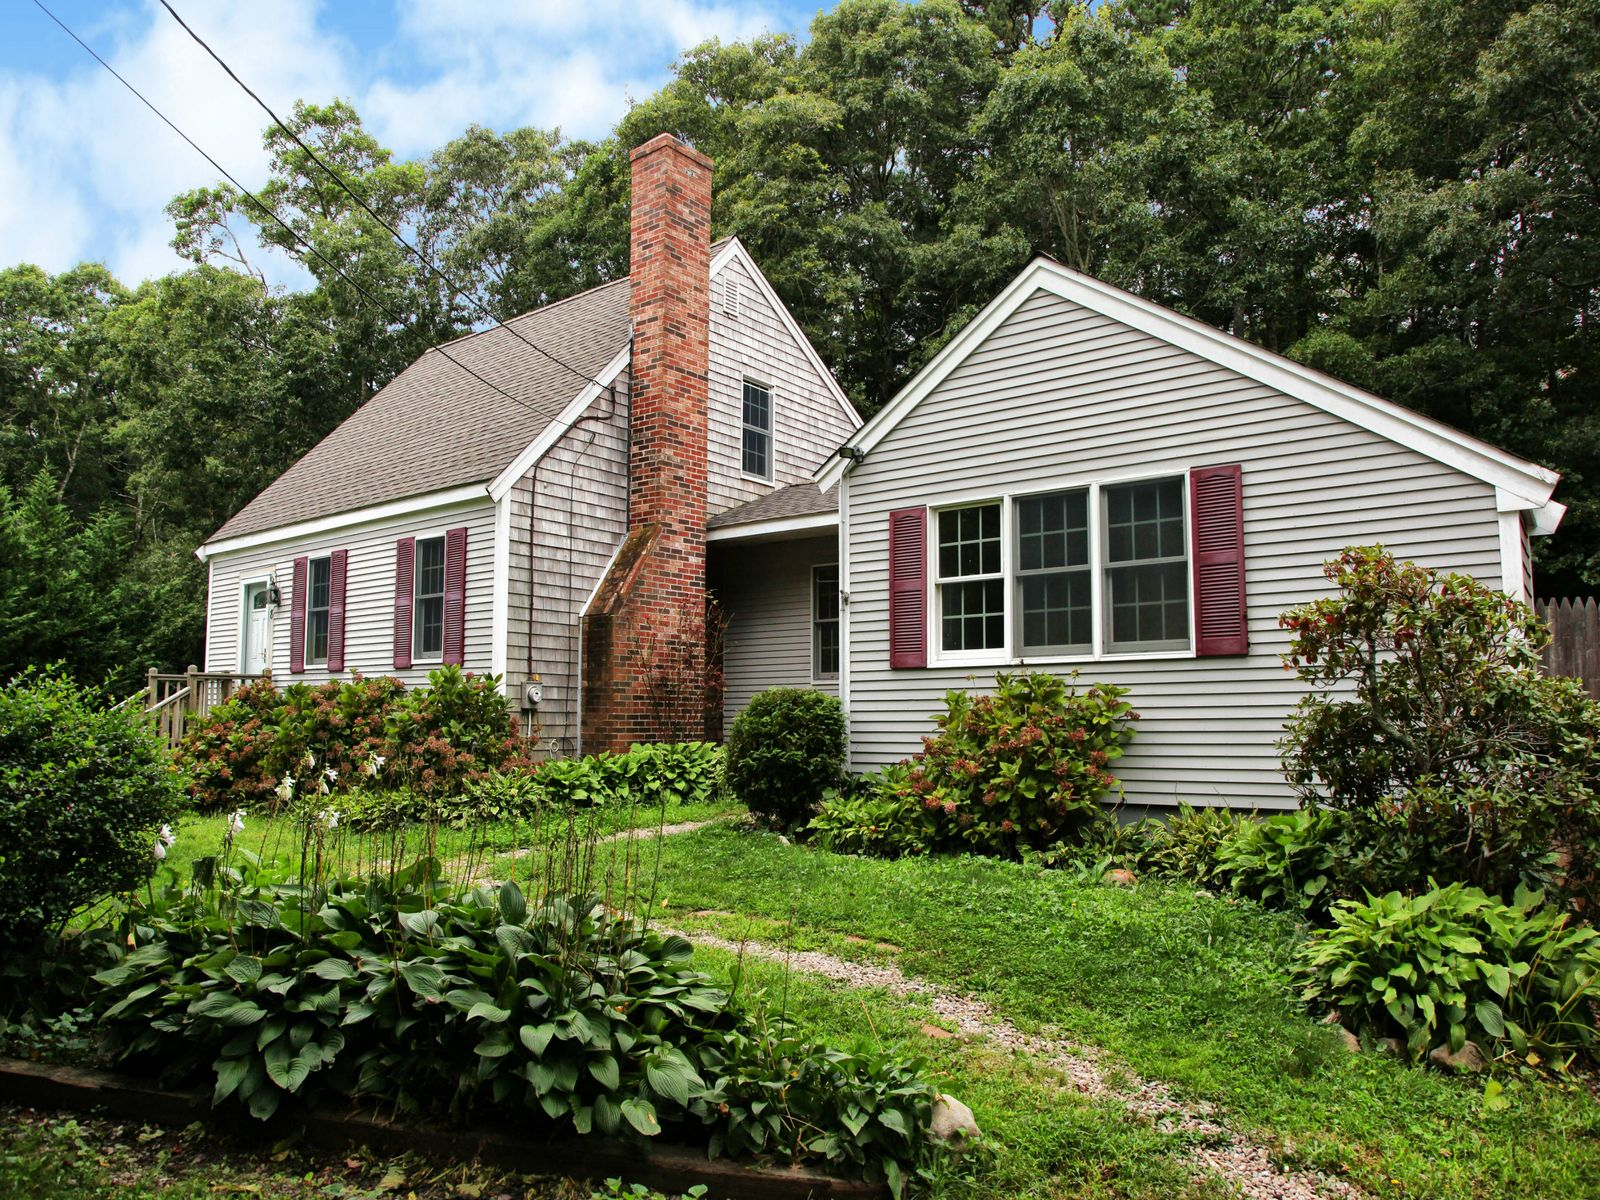 Cape Cod Gem, Marstons Mills MA Single Family Home - Cape Cod Real Estate